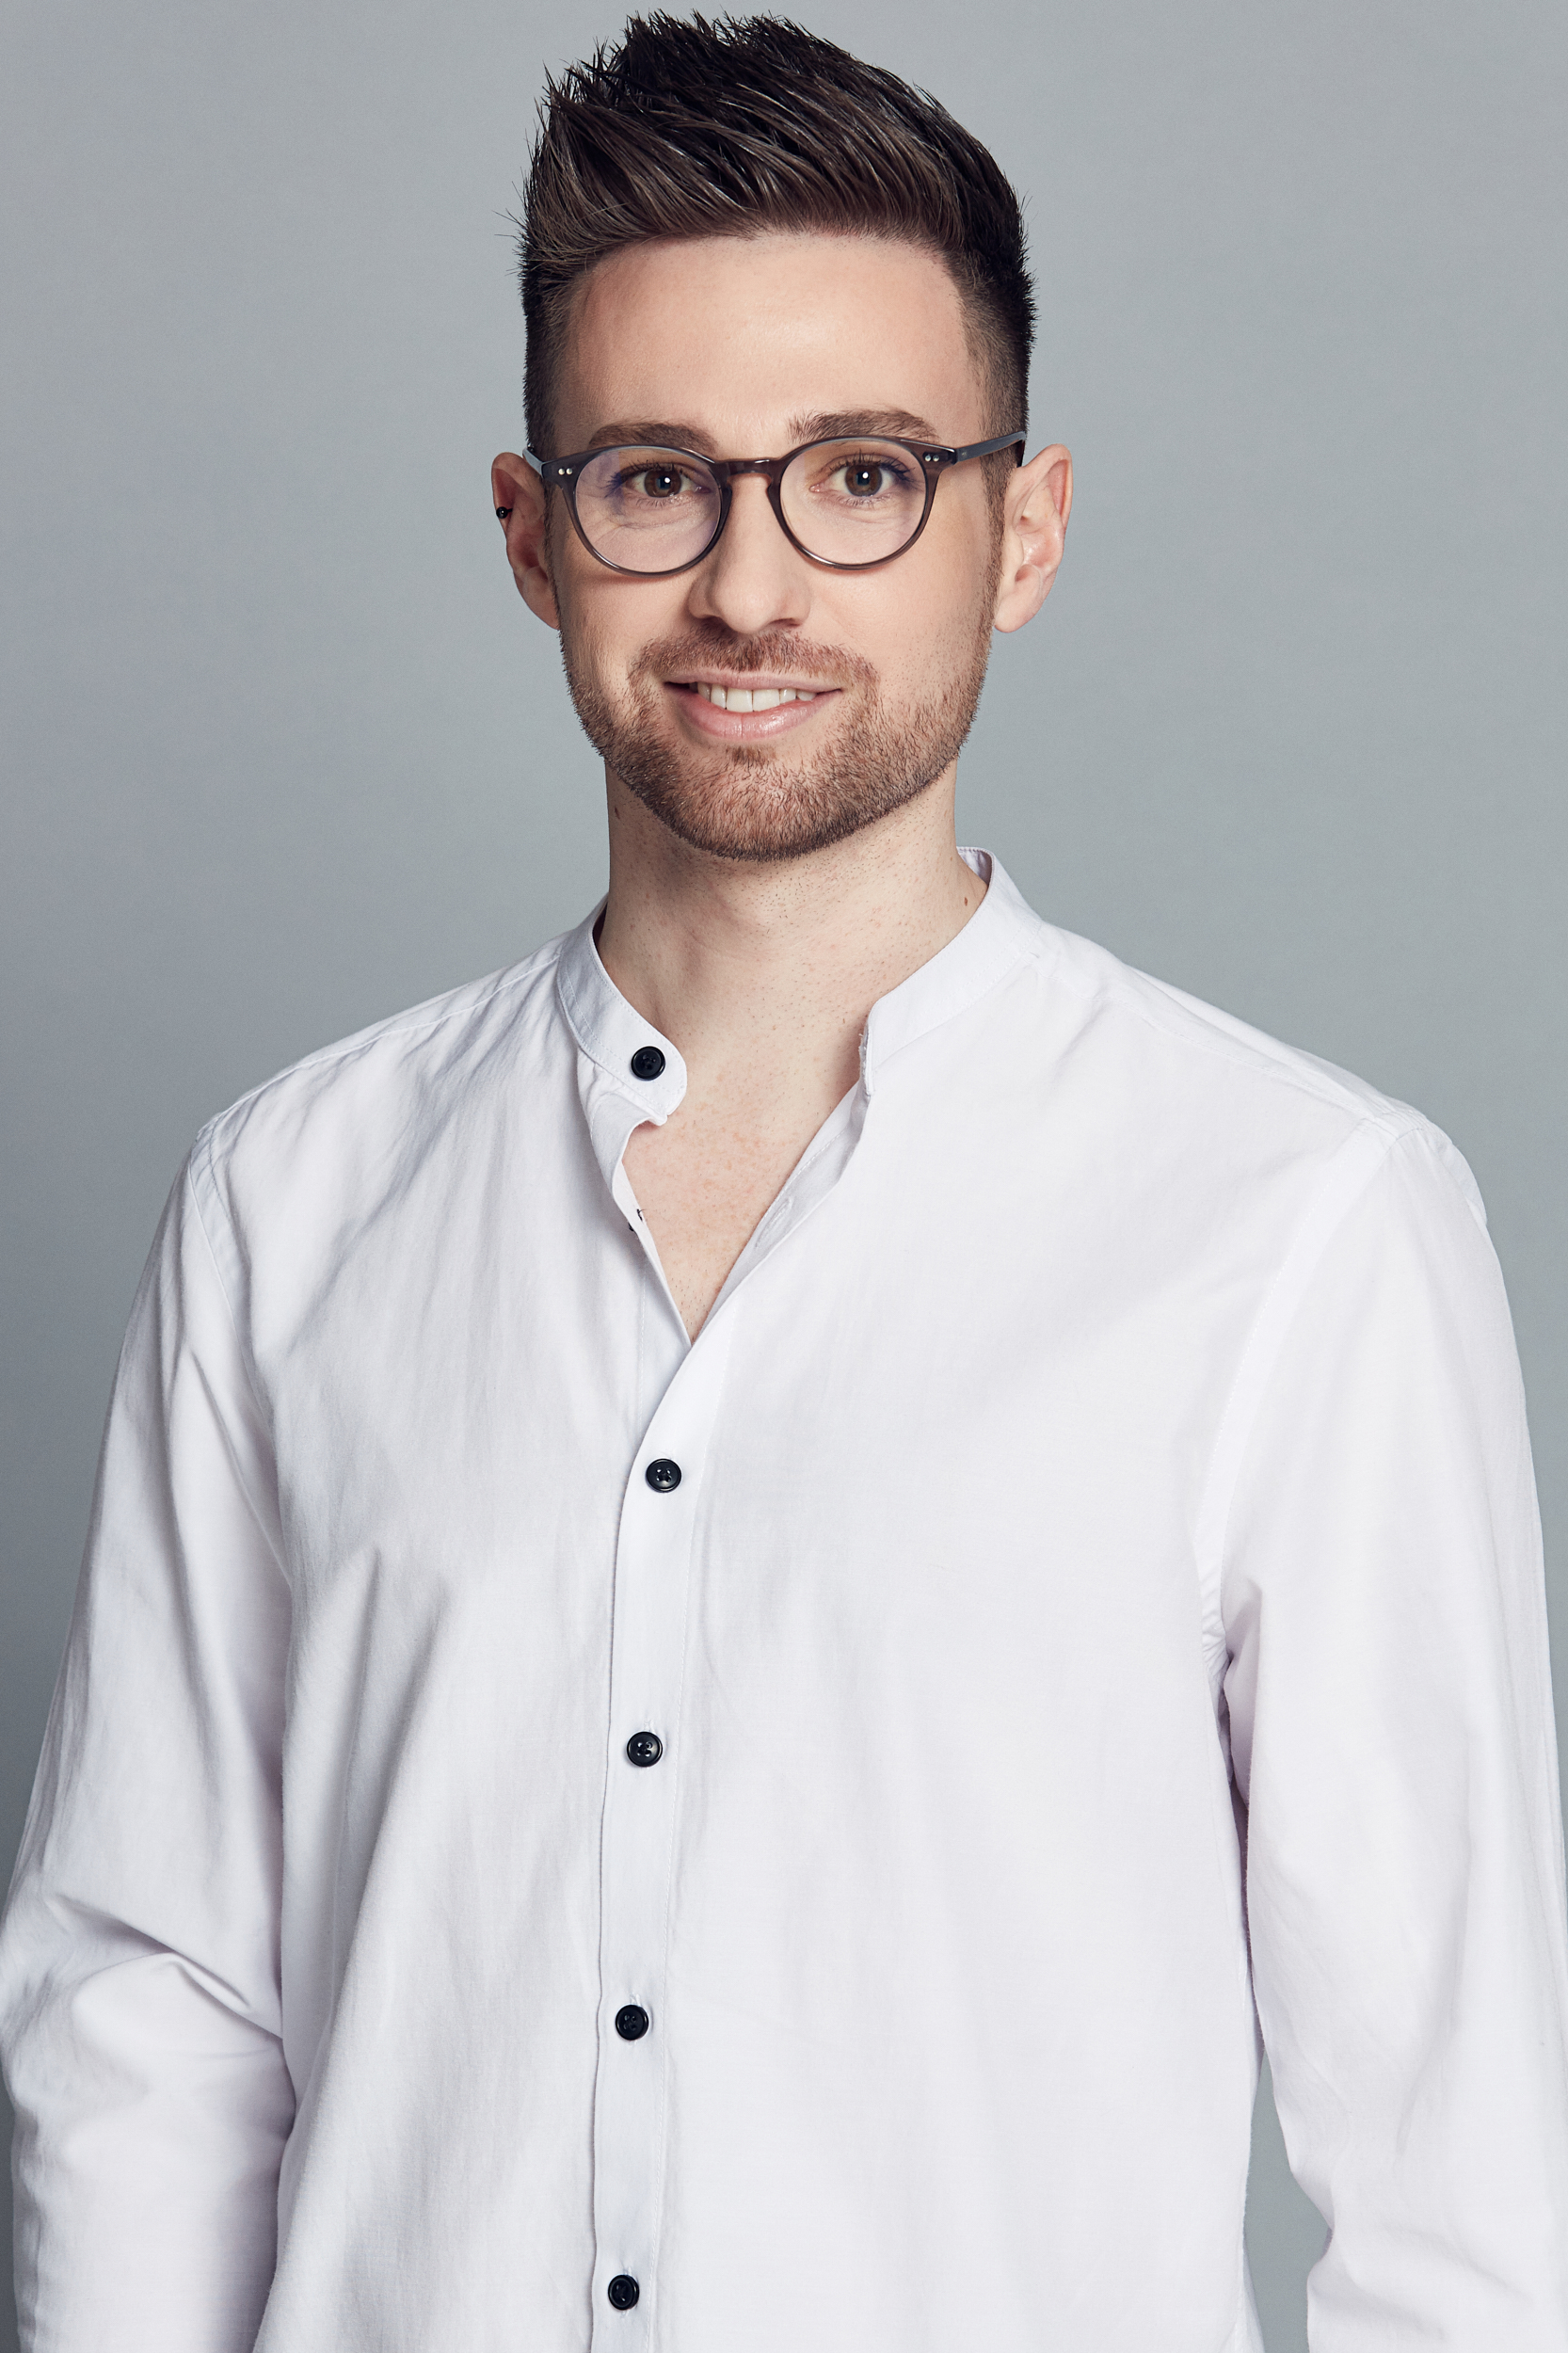 Ryan King - Senior Stylist | Senior Account ManagerRyan joined Cooper Robinson in 2012. Mentored by, and working alongside Megan for a number of years, Ryan has worked across all facets of the business and has been instrumental in developing key processes and styling direction for the broader styling team.Ryan has a passion for interiors and design and brings with him a wealth of knowledge and experience spanning many creative industries including Costume Design & Fashion Manufacturing, Dance & Theatre, and Interior Design.As a Senior Stylist & Account Manager, his focus is on providing outstanding design and styling outcomes for our clients while adapting to current market trends. With a collaborative approach, Ryan thrives on creating beautiful, cohesive interiors while remaining true to the Cooper Robinson aesthetic.